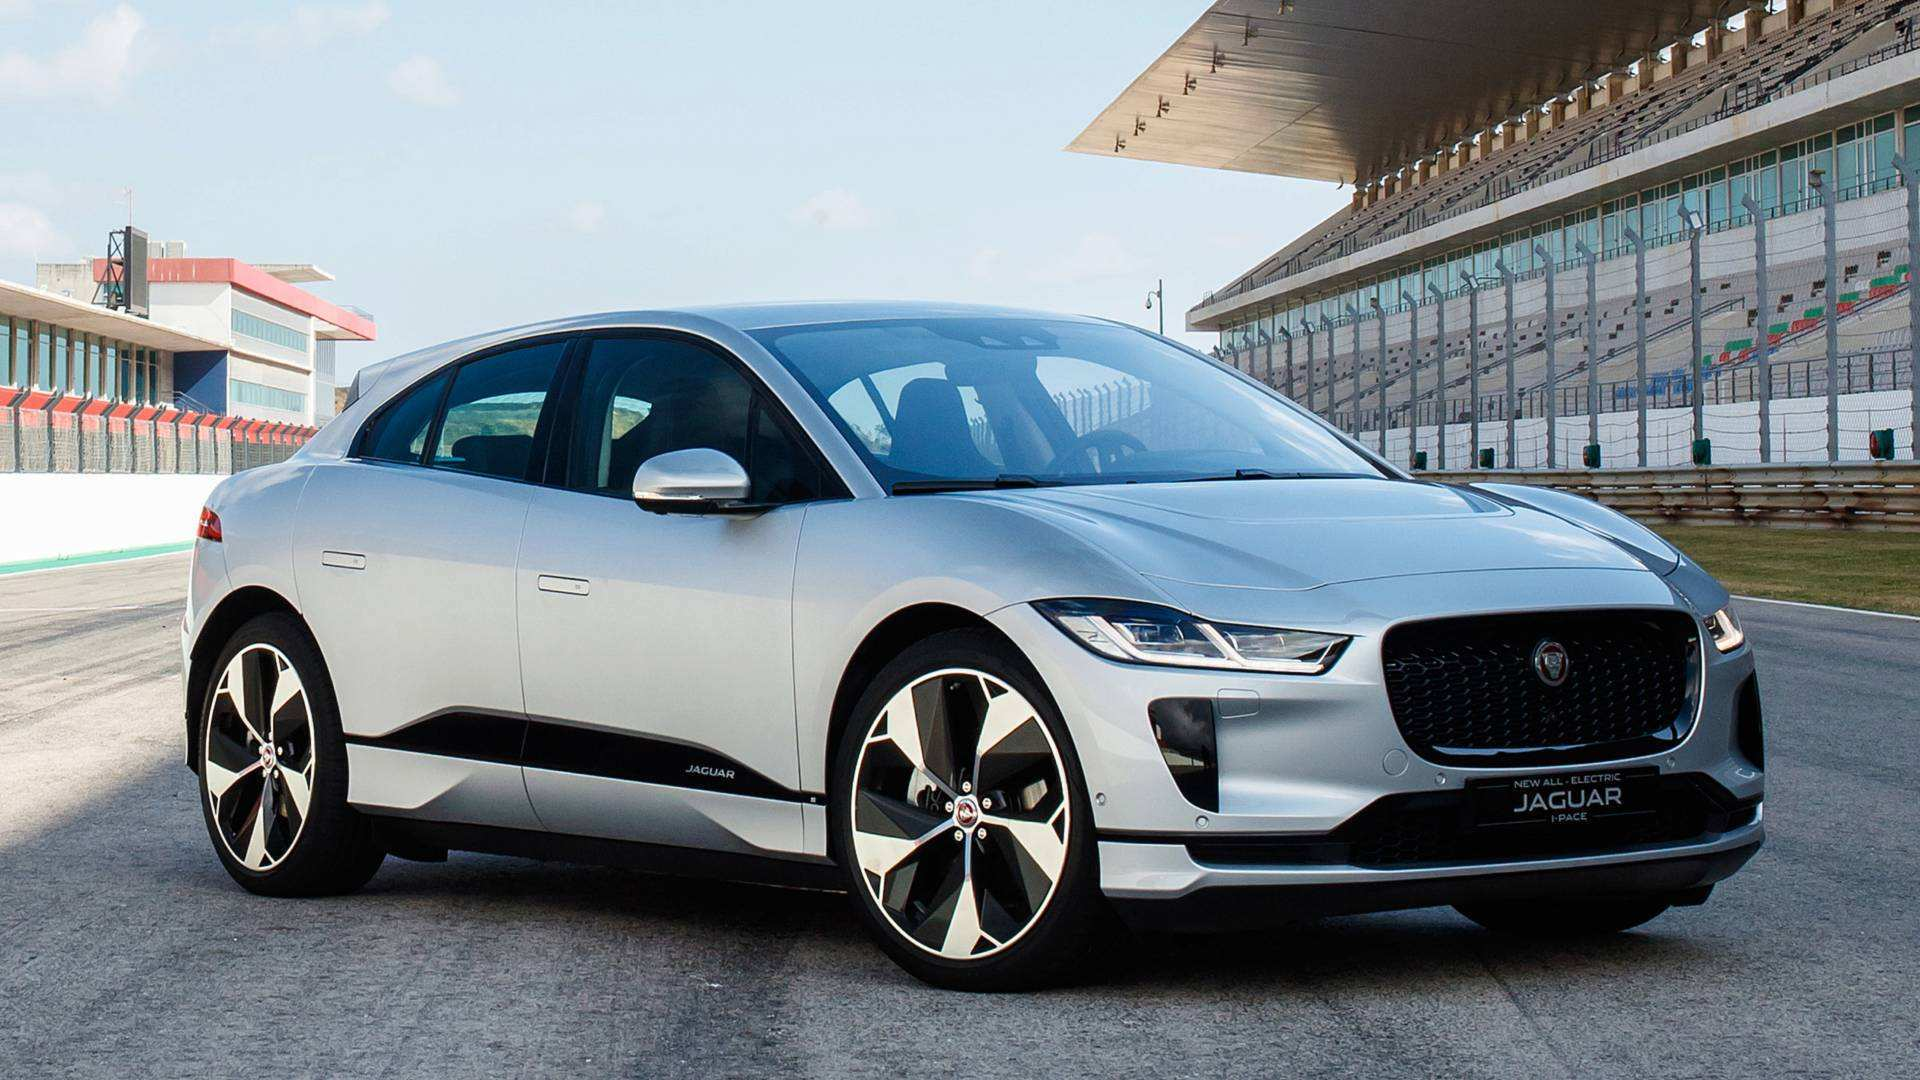 27 Concept of 2019 Jaguar Electric Picture by 2019 Jaguar Electric